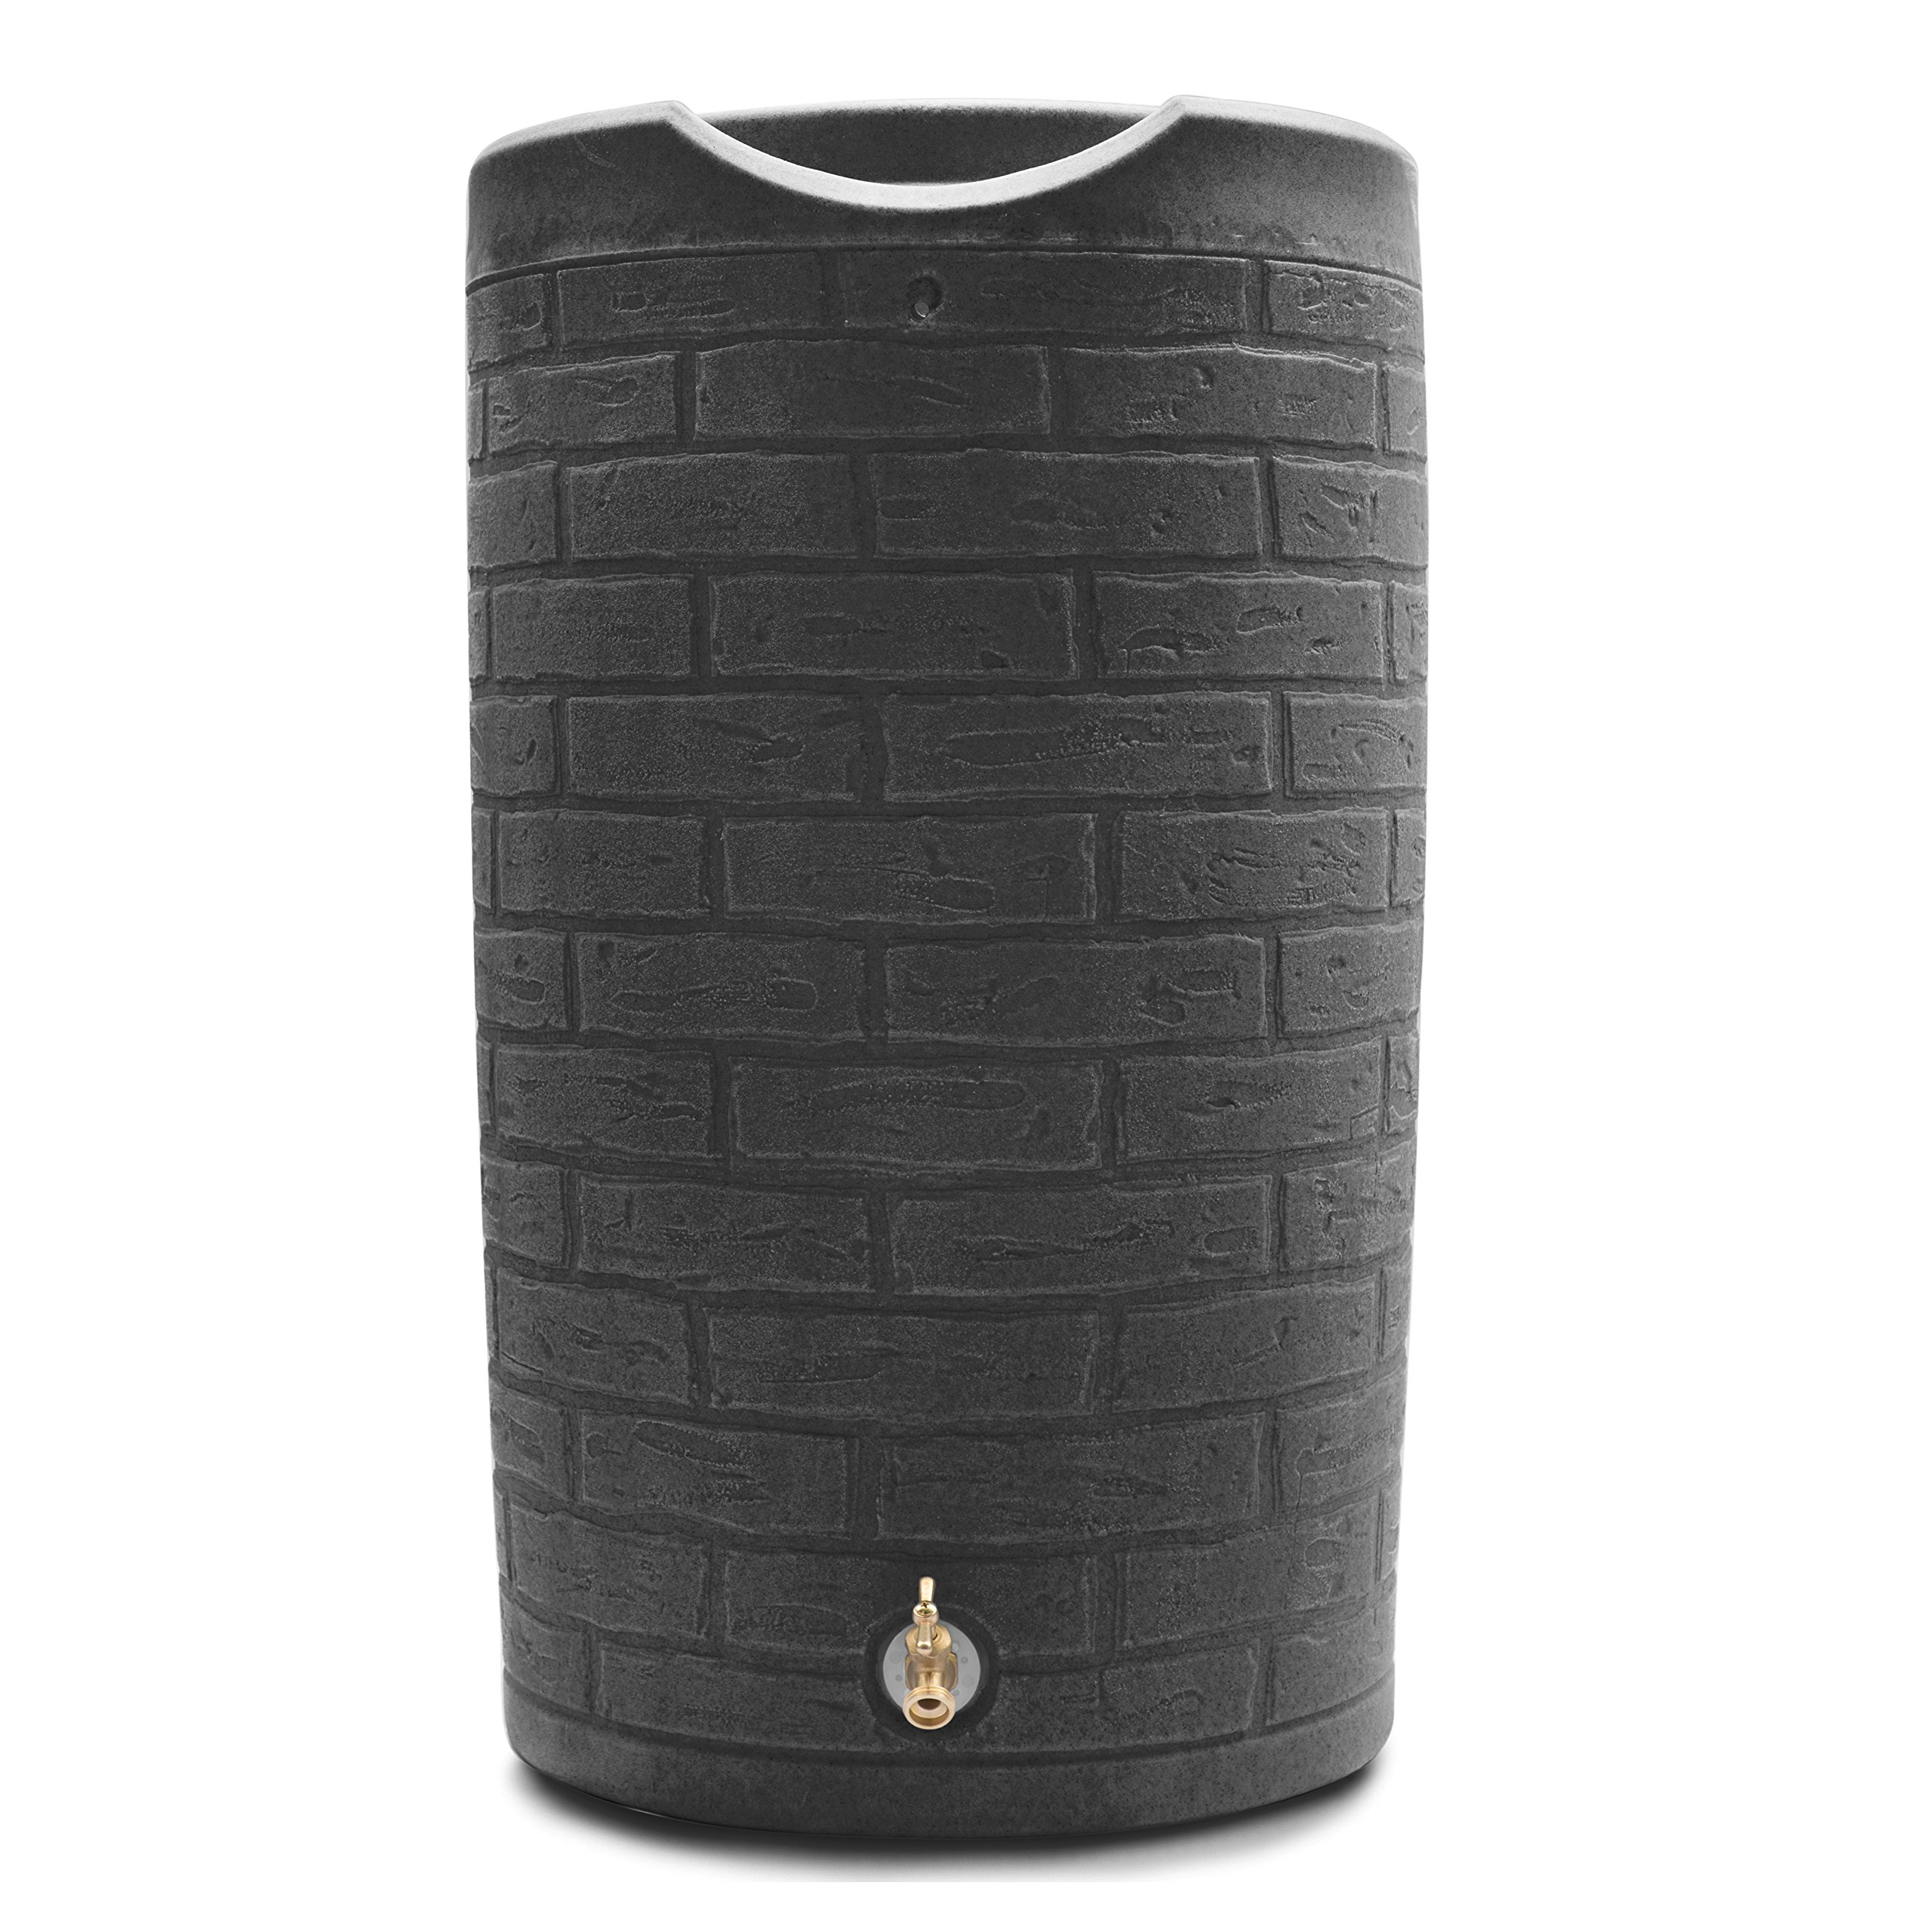 Good Ideas IMP-D50-DAR Impressions Downton Rain Saver Rain Barrel, 50 gallon, Dark Granite by Good Ideas